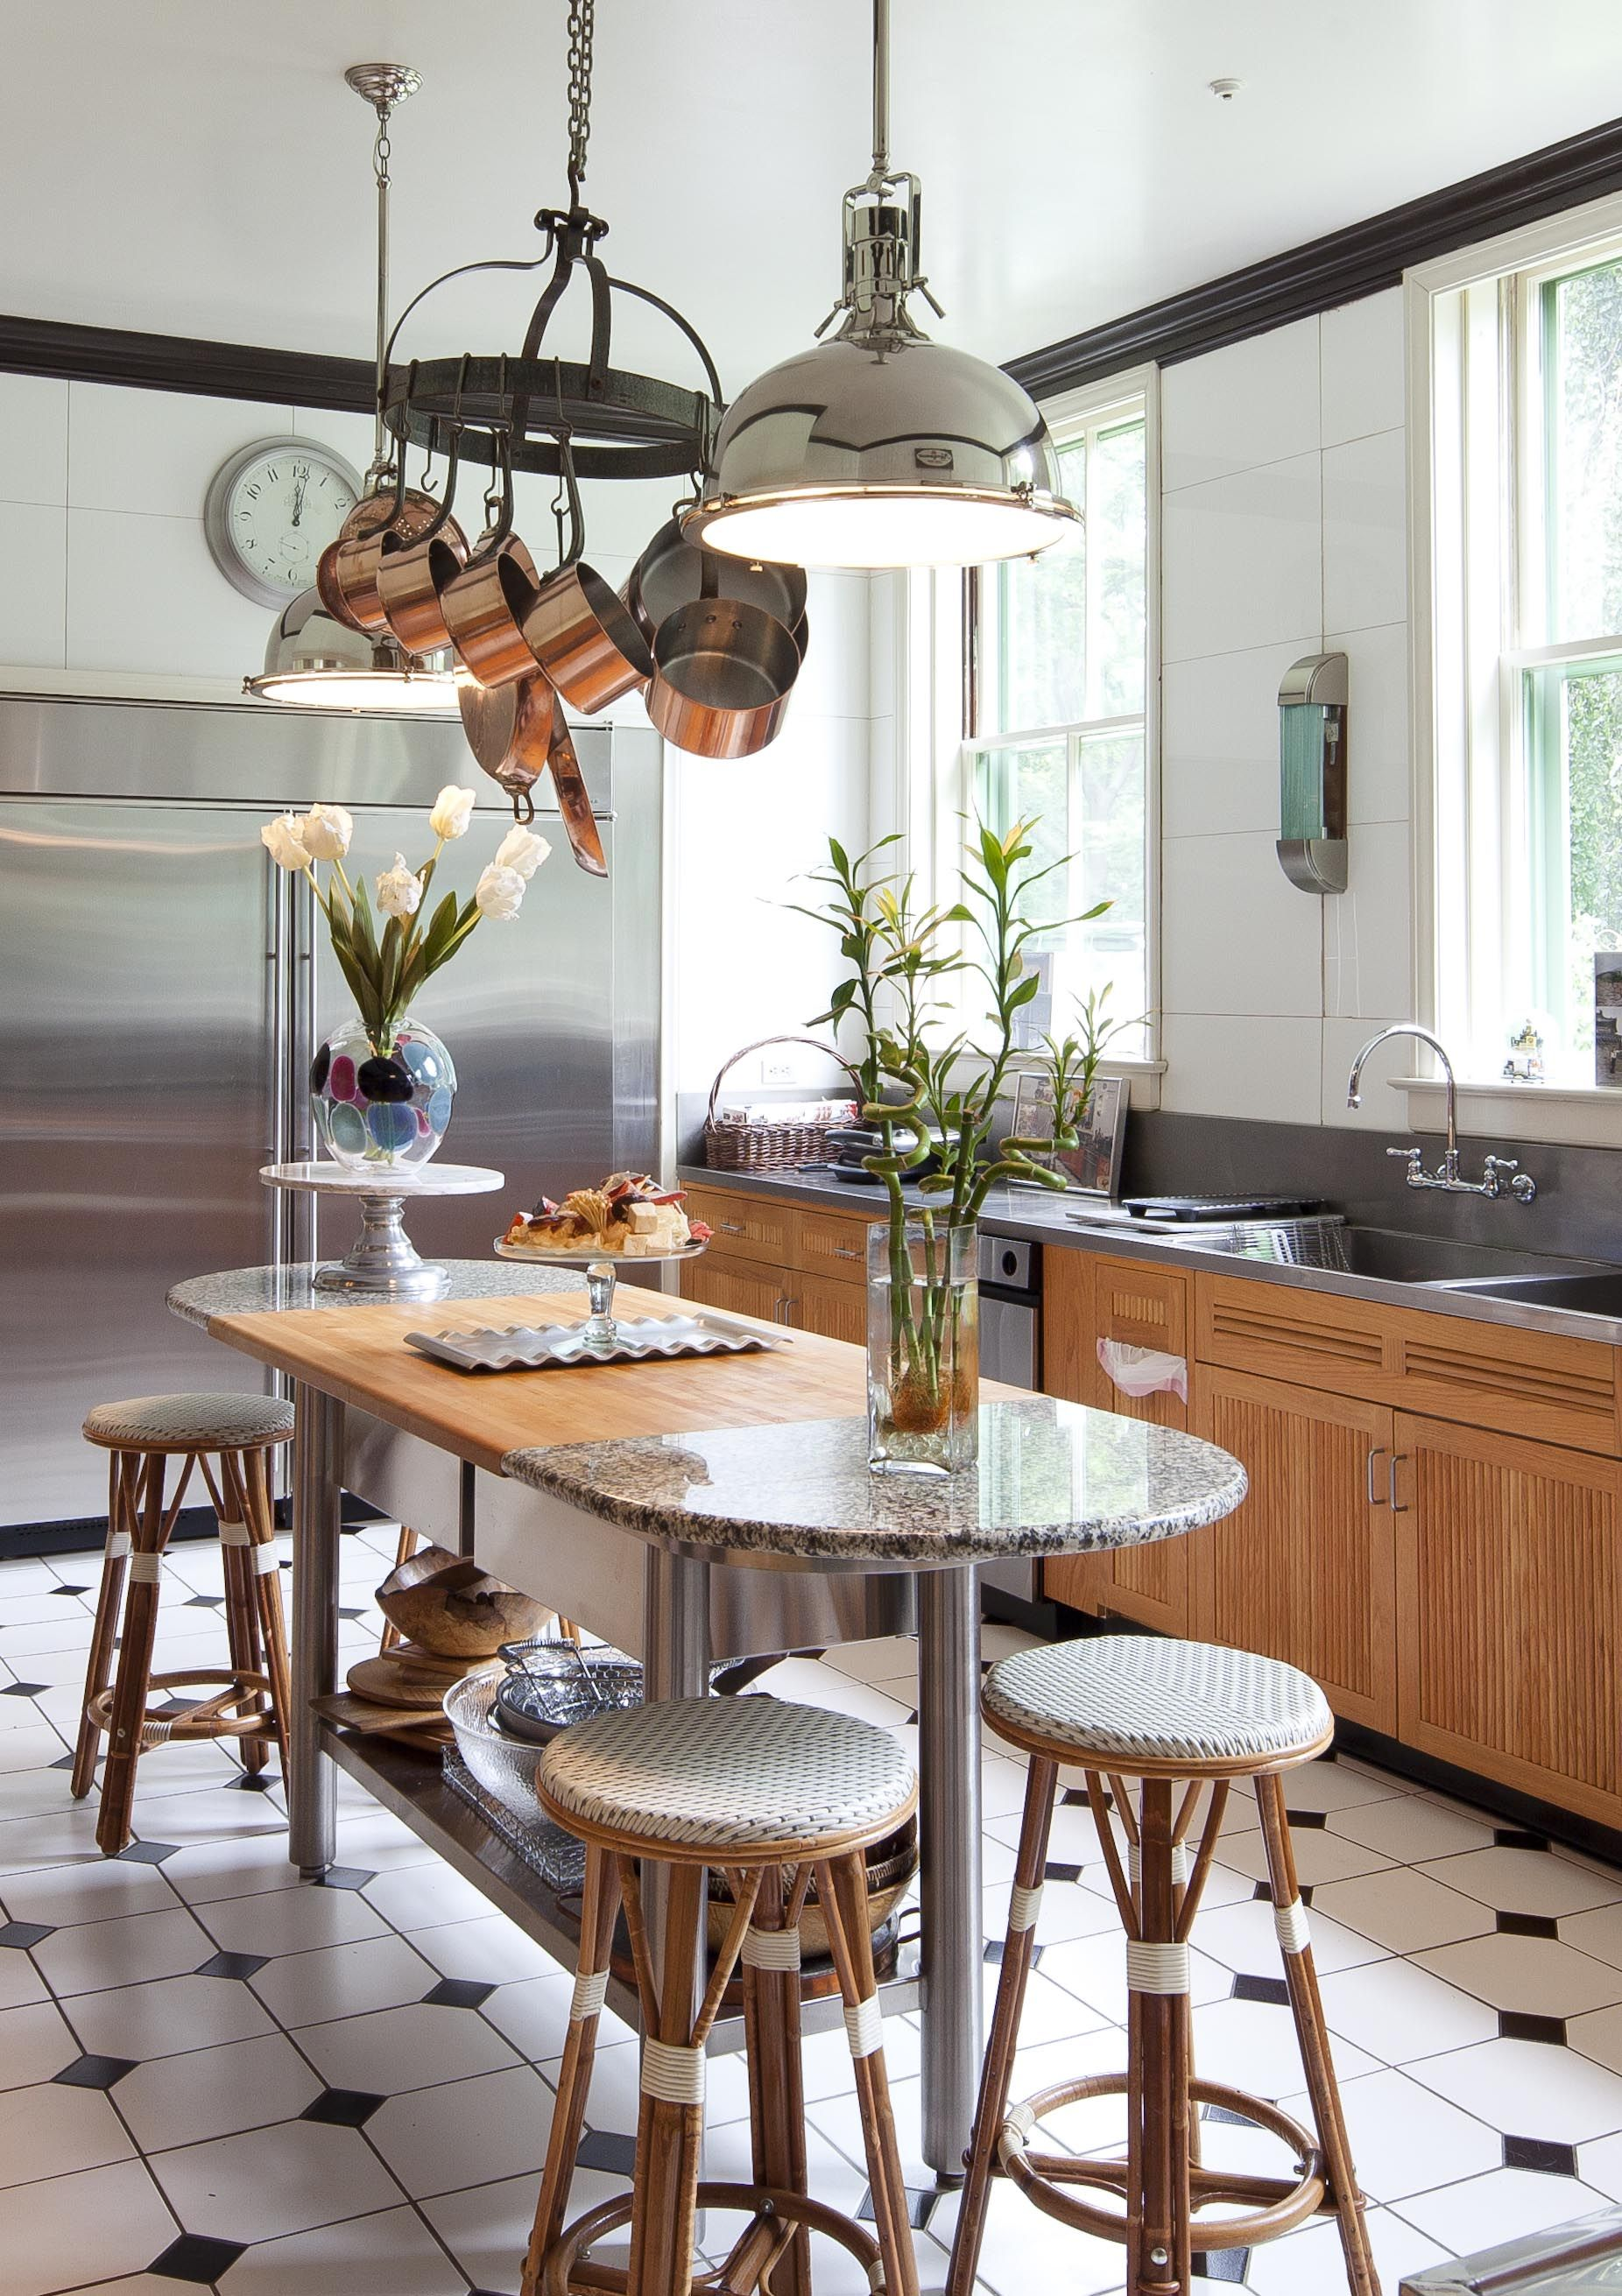 Kitchen In Newport, R.I. Photo: Trent Bell For The New York Times. Copper  Pots Hanging From The Ceiling...my Dream Kitchen Feature.